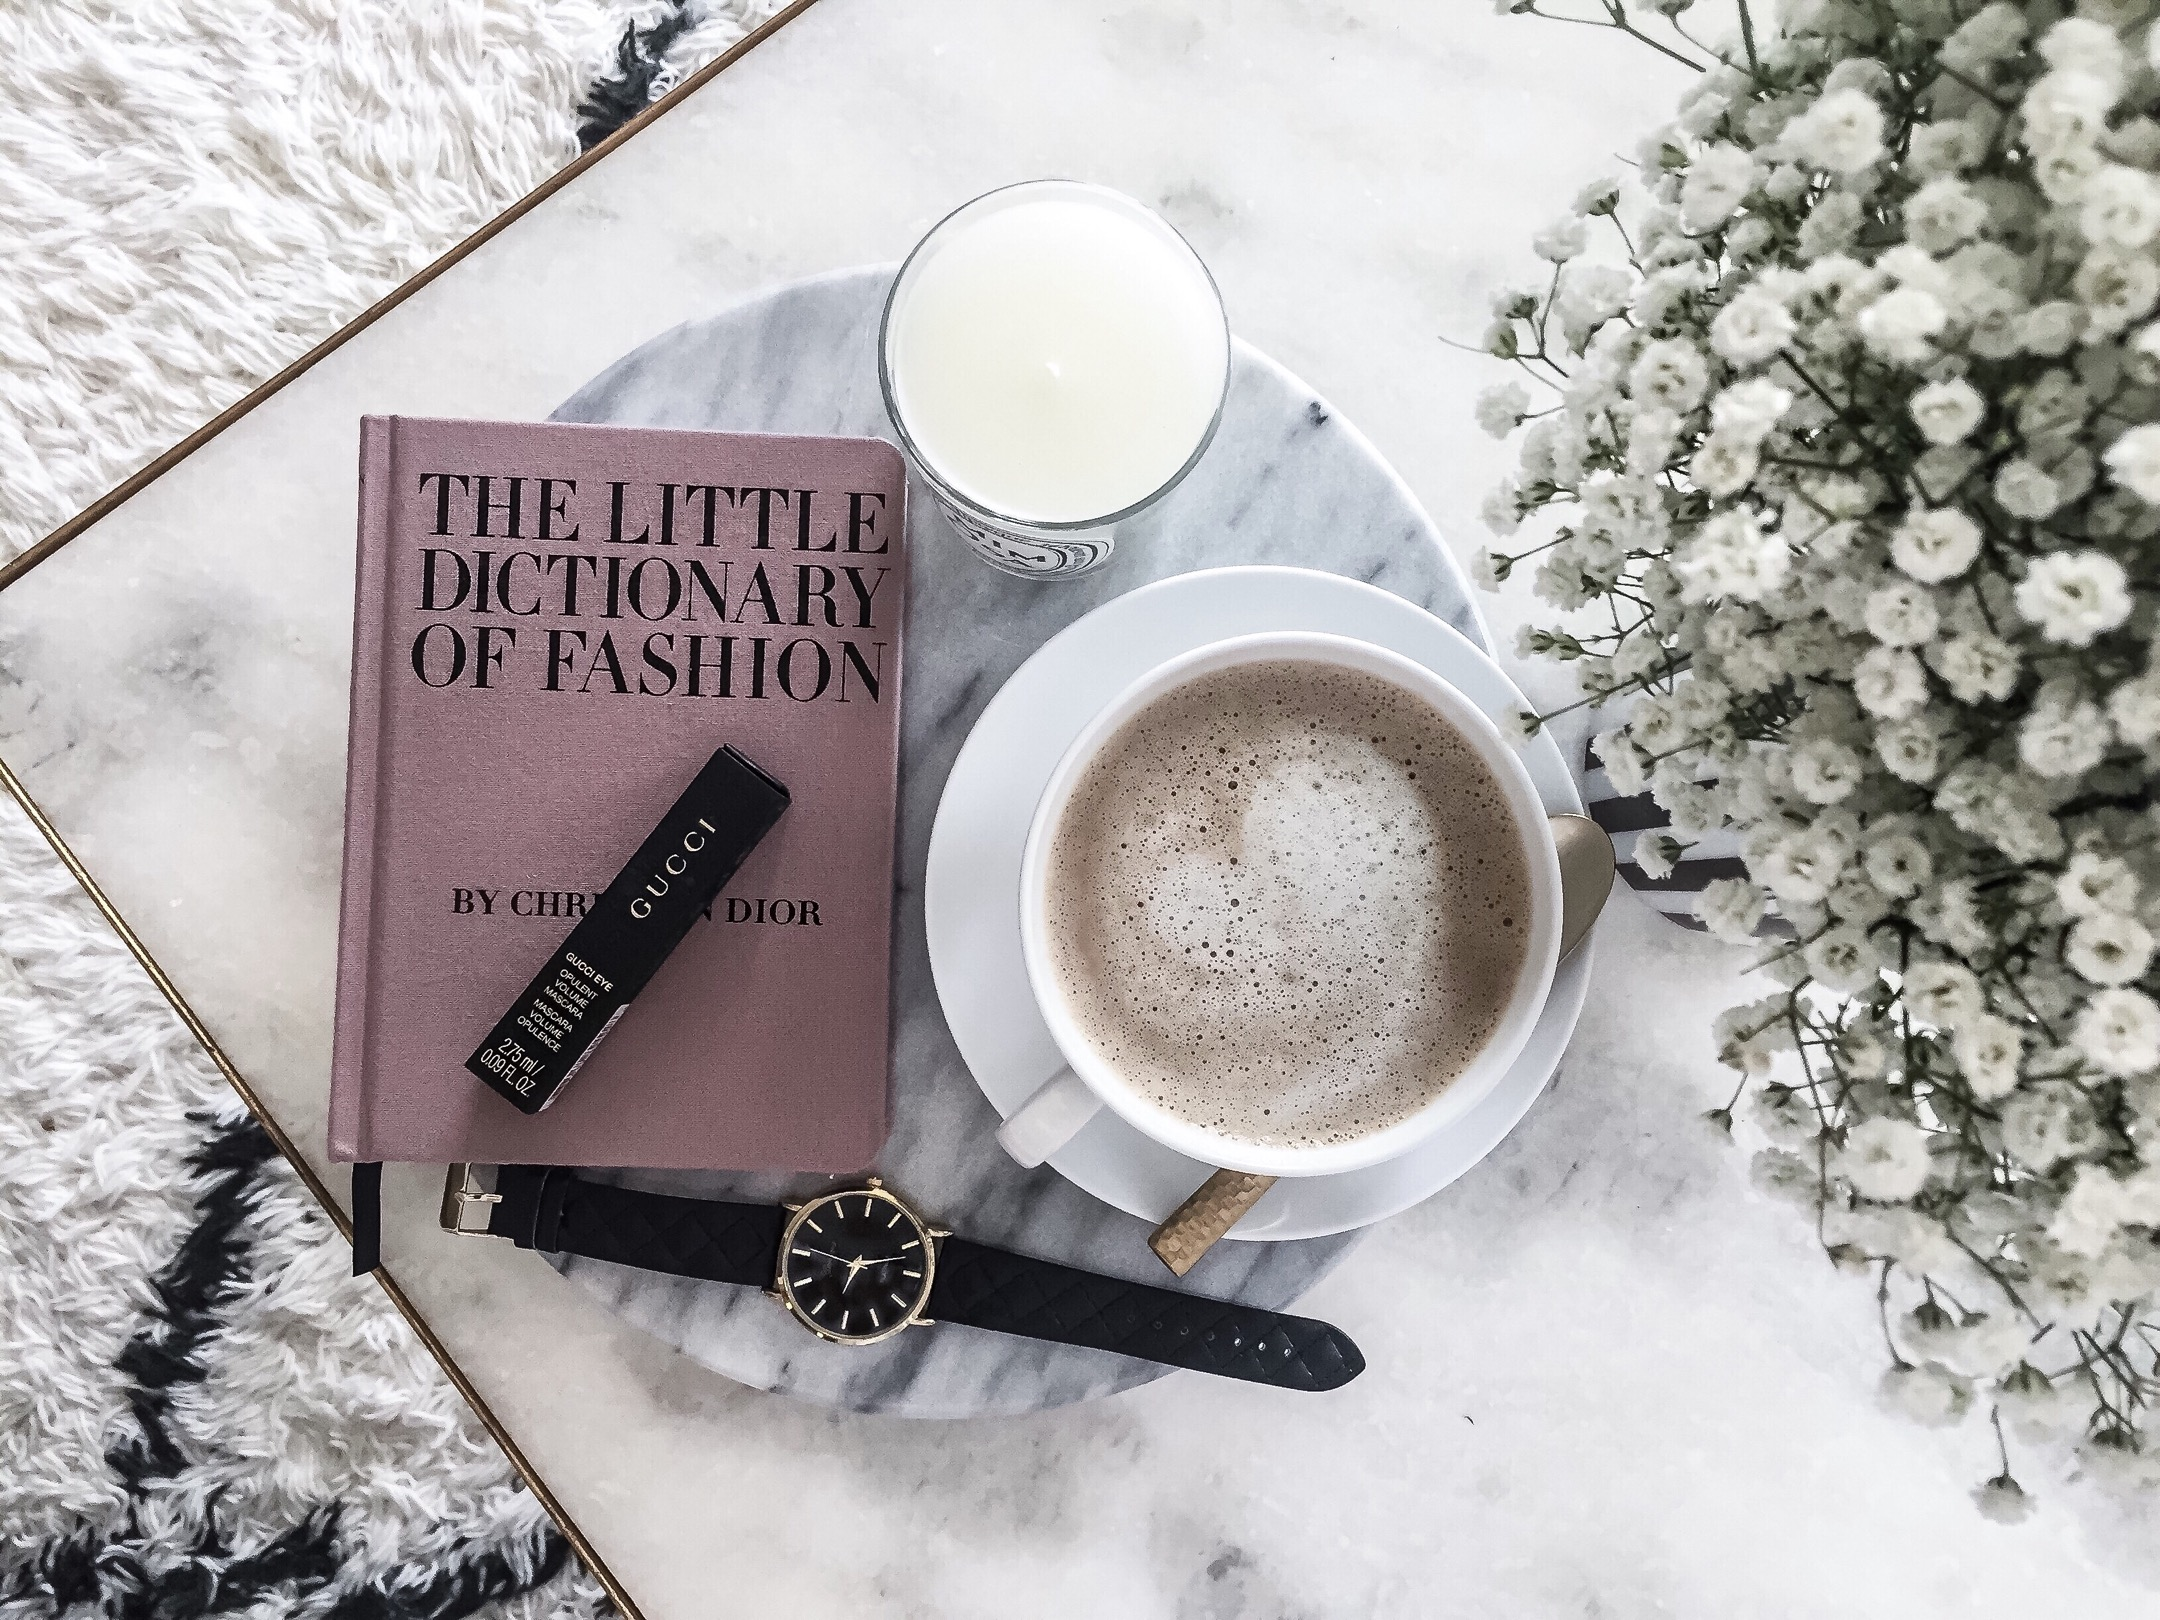 Houston style blogger Tiffany jais | The little dictionary of fashion book and a round marble serving tray